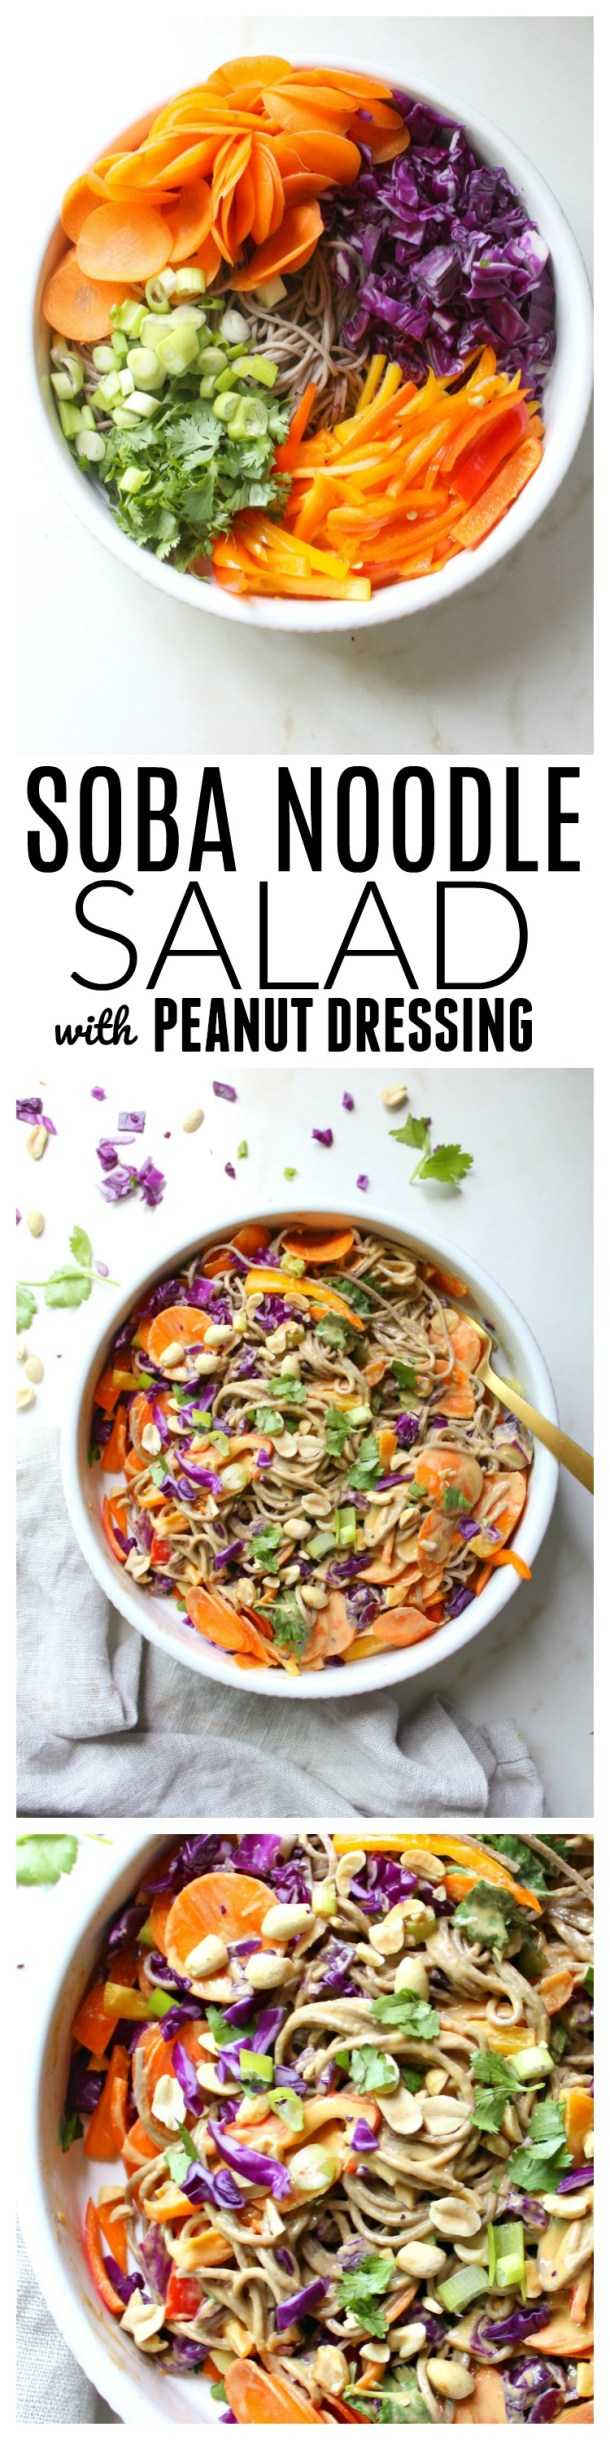 Keep dinner light and healthy with this Soba Noodle Salad with Peanut Dressing. Ready in less than 30 minutes and packed full of delicious veggies   ThisSavoryVegan.com